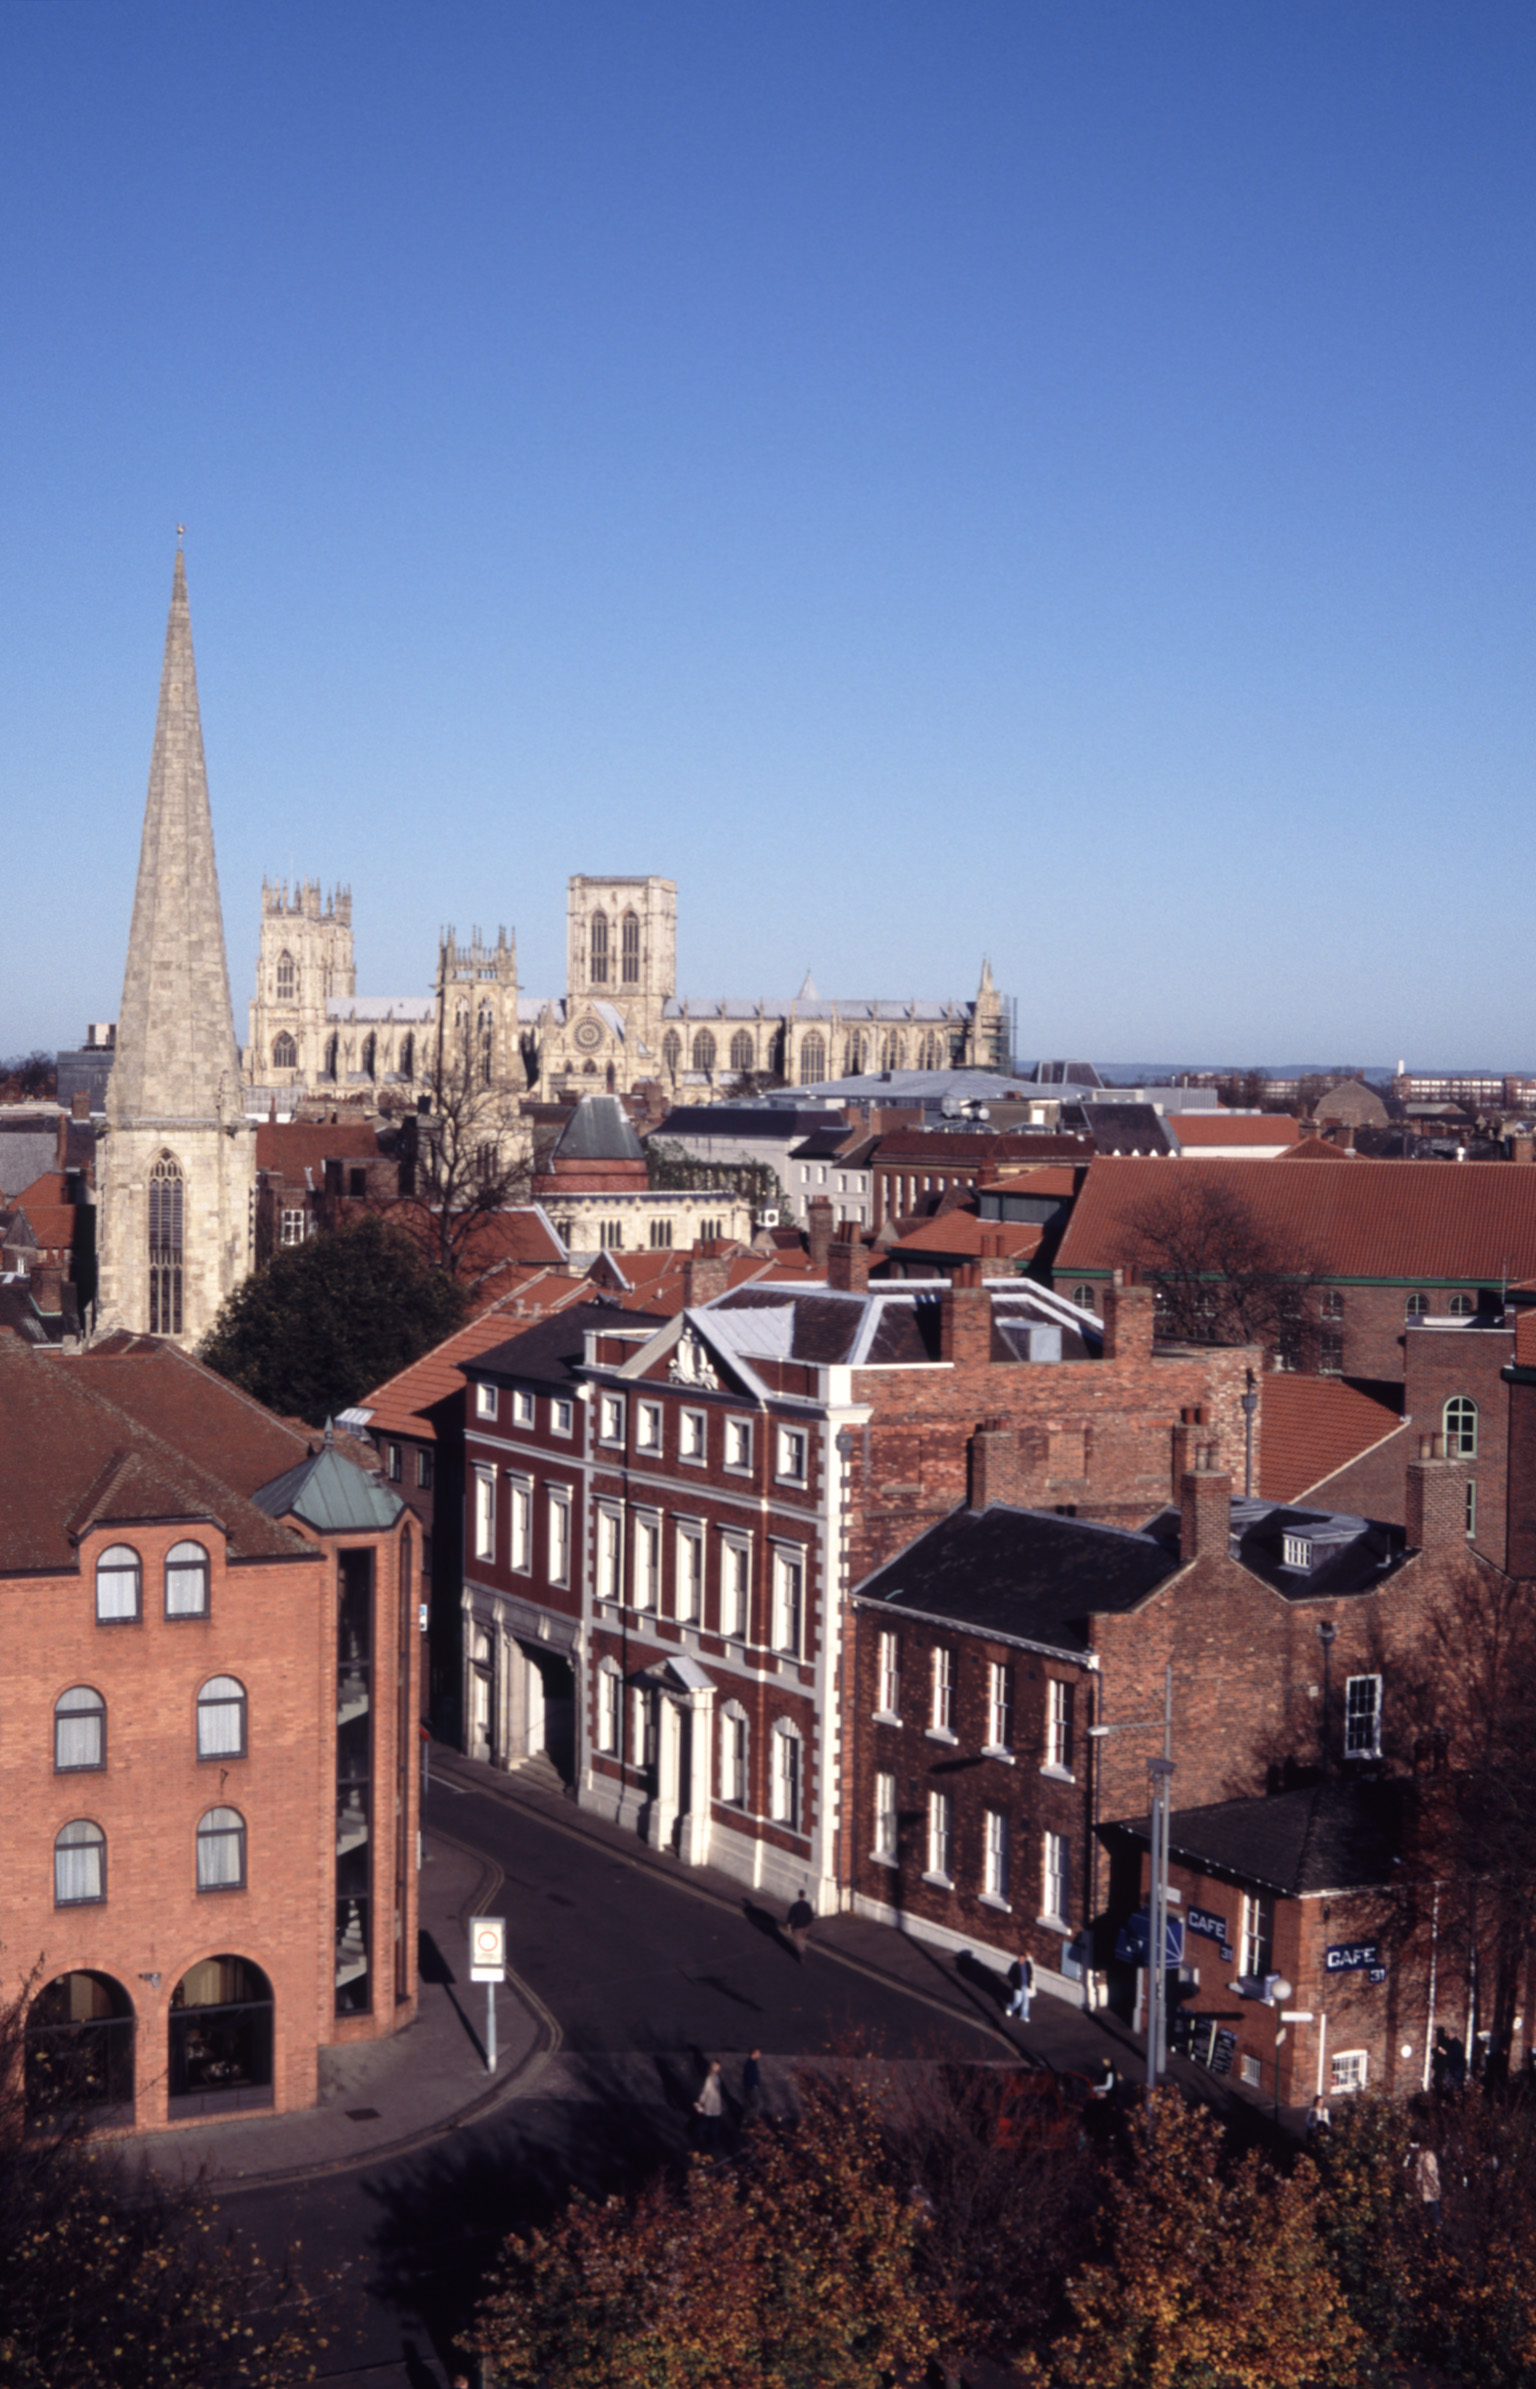 Rooftop Skyline with View of York Minster Cathedral in Distance, York, England